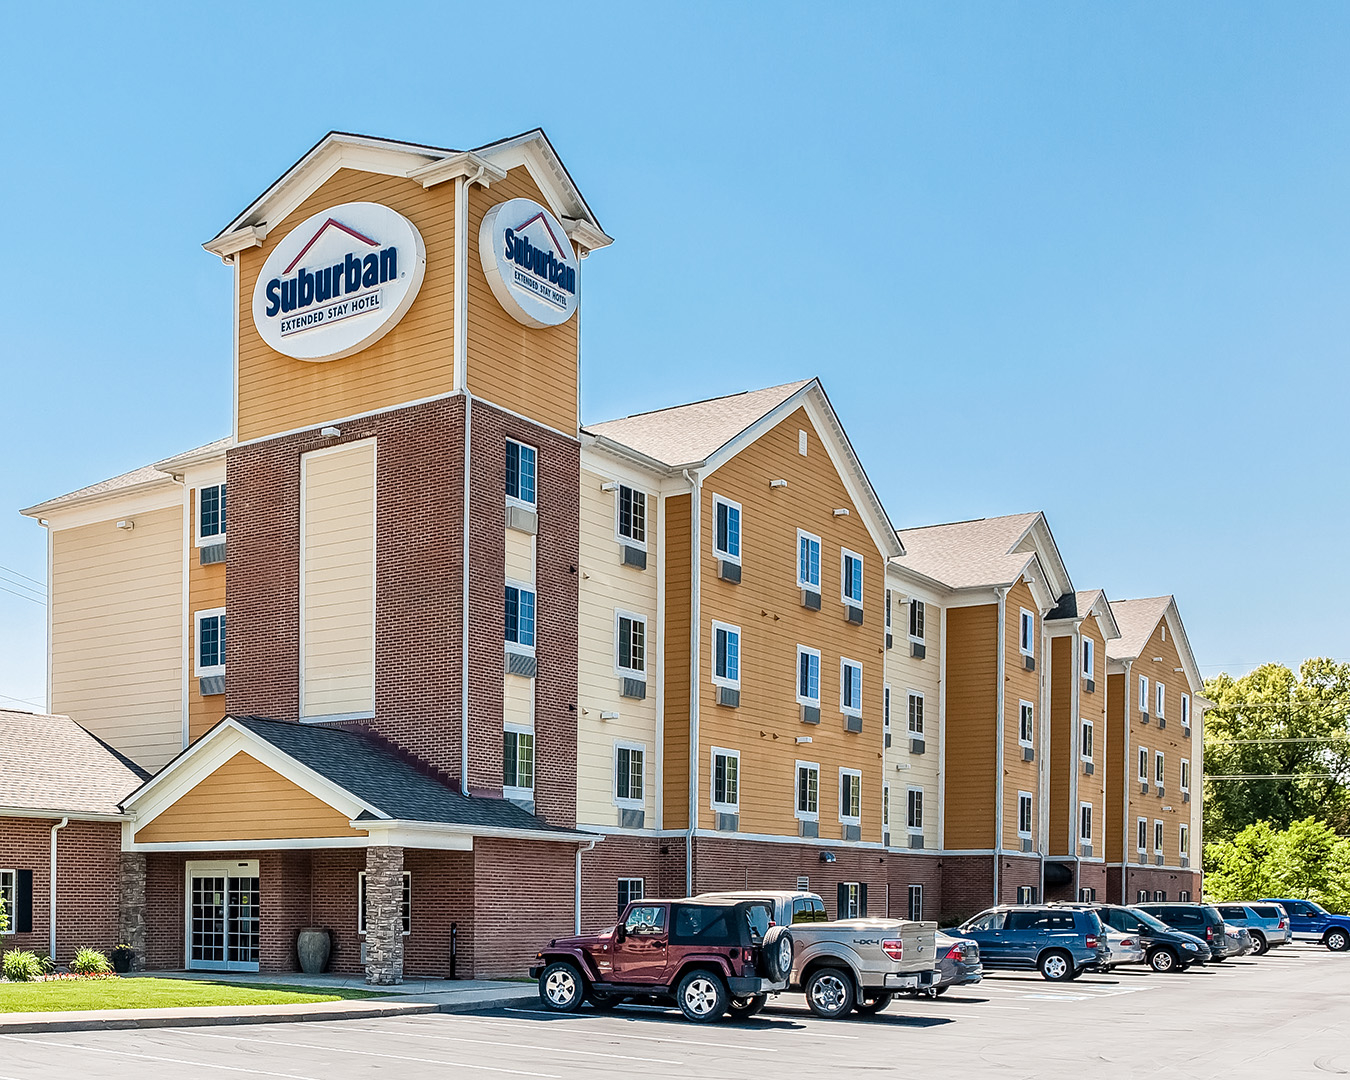 Specials & Promotions. Visit here for all of Extended Stay America's current specials and promotions! Also check out savings for groups, advanced purchases, seniors, .